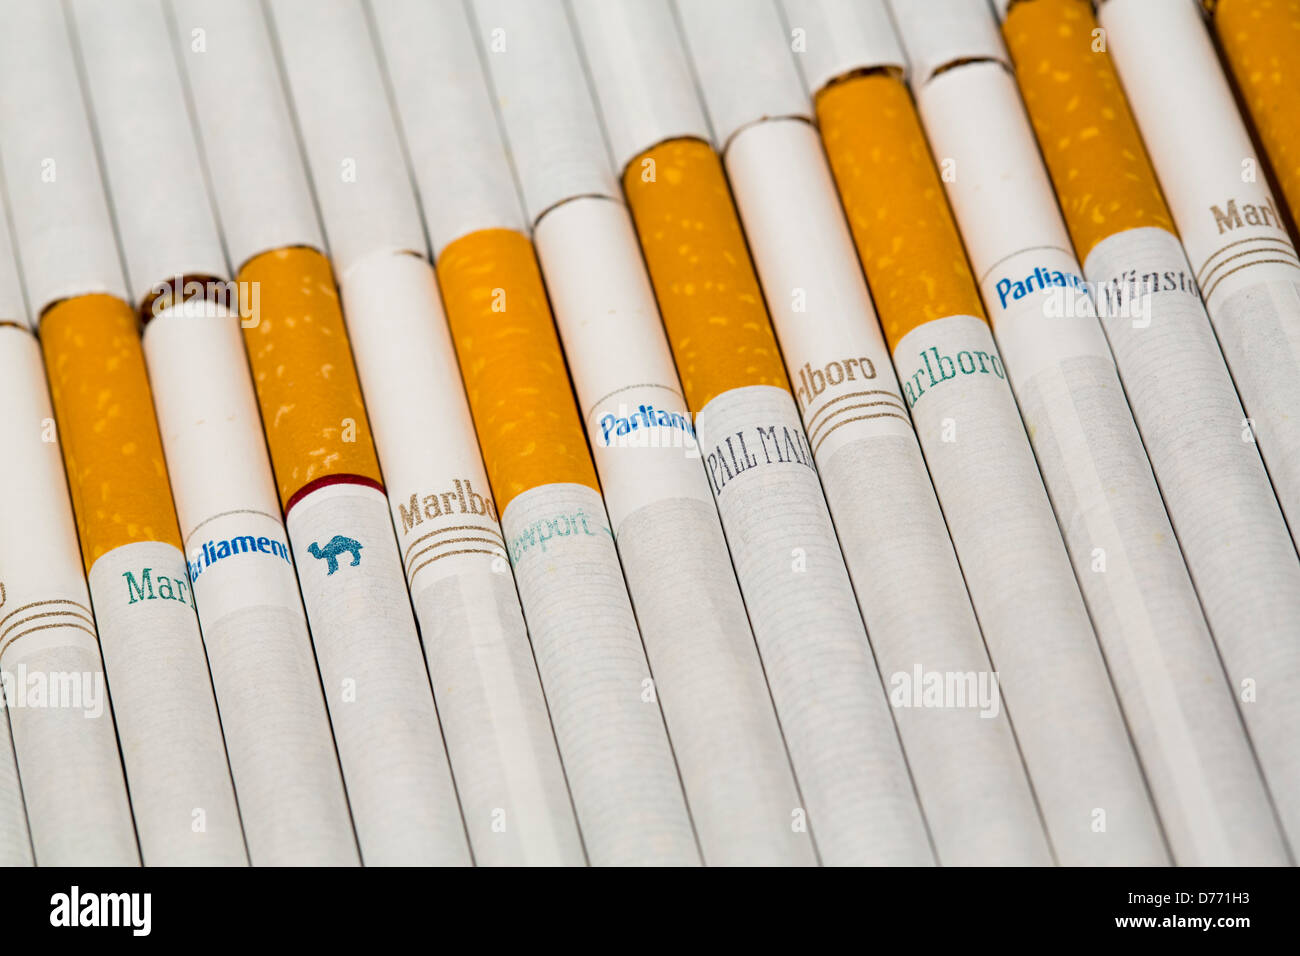 Buy cheap Sobranie cigarettes